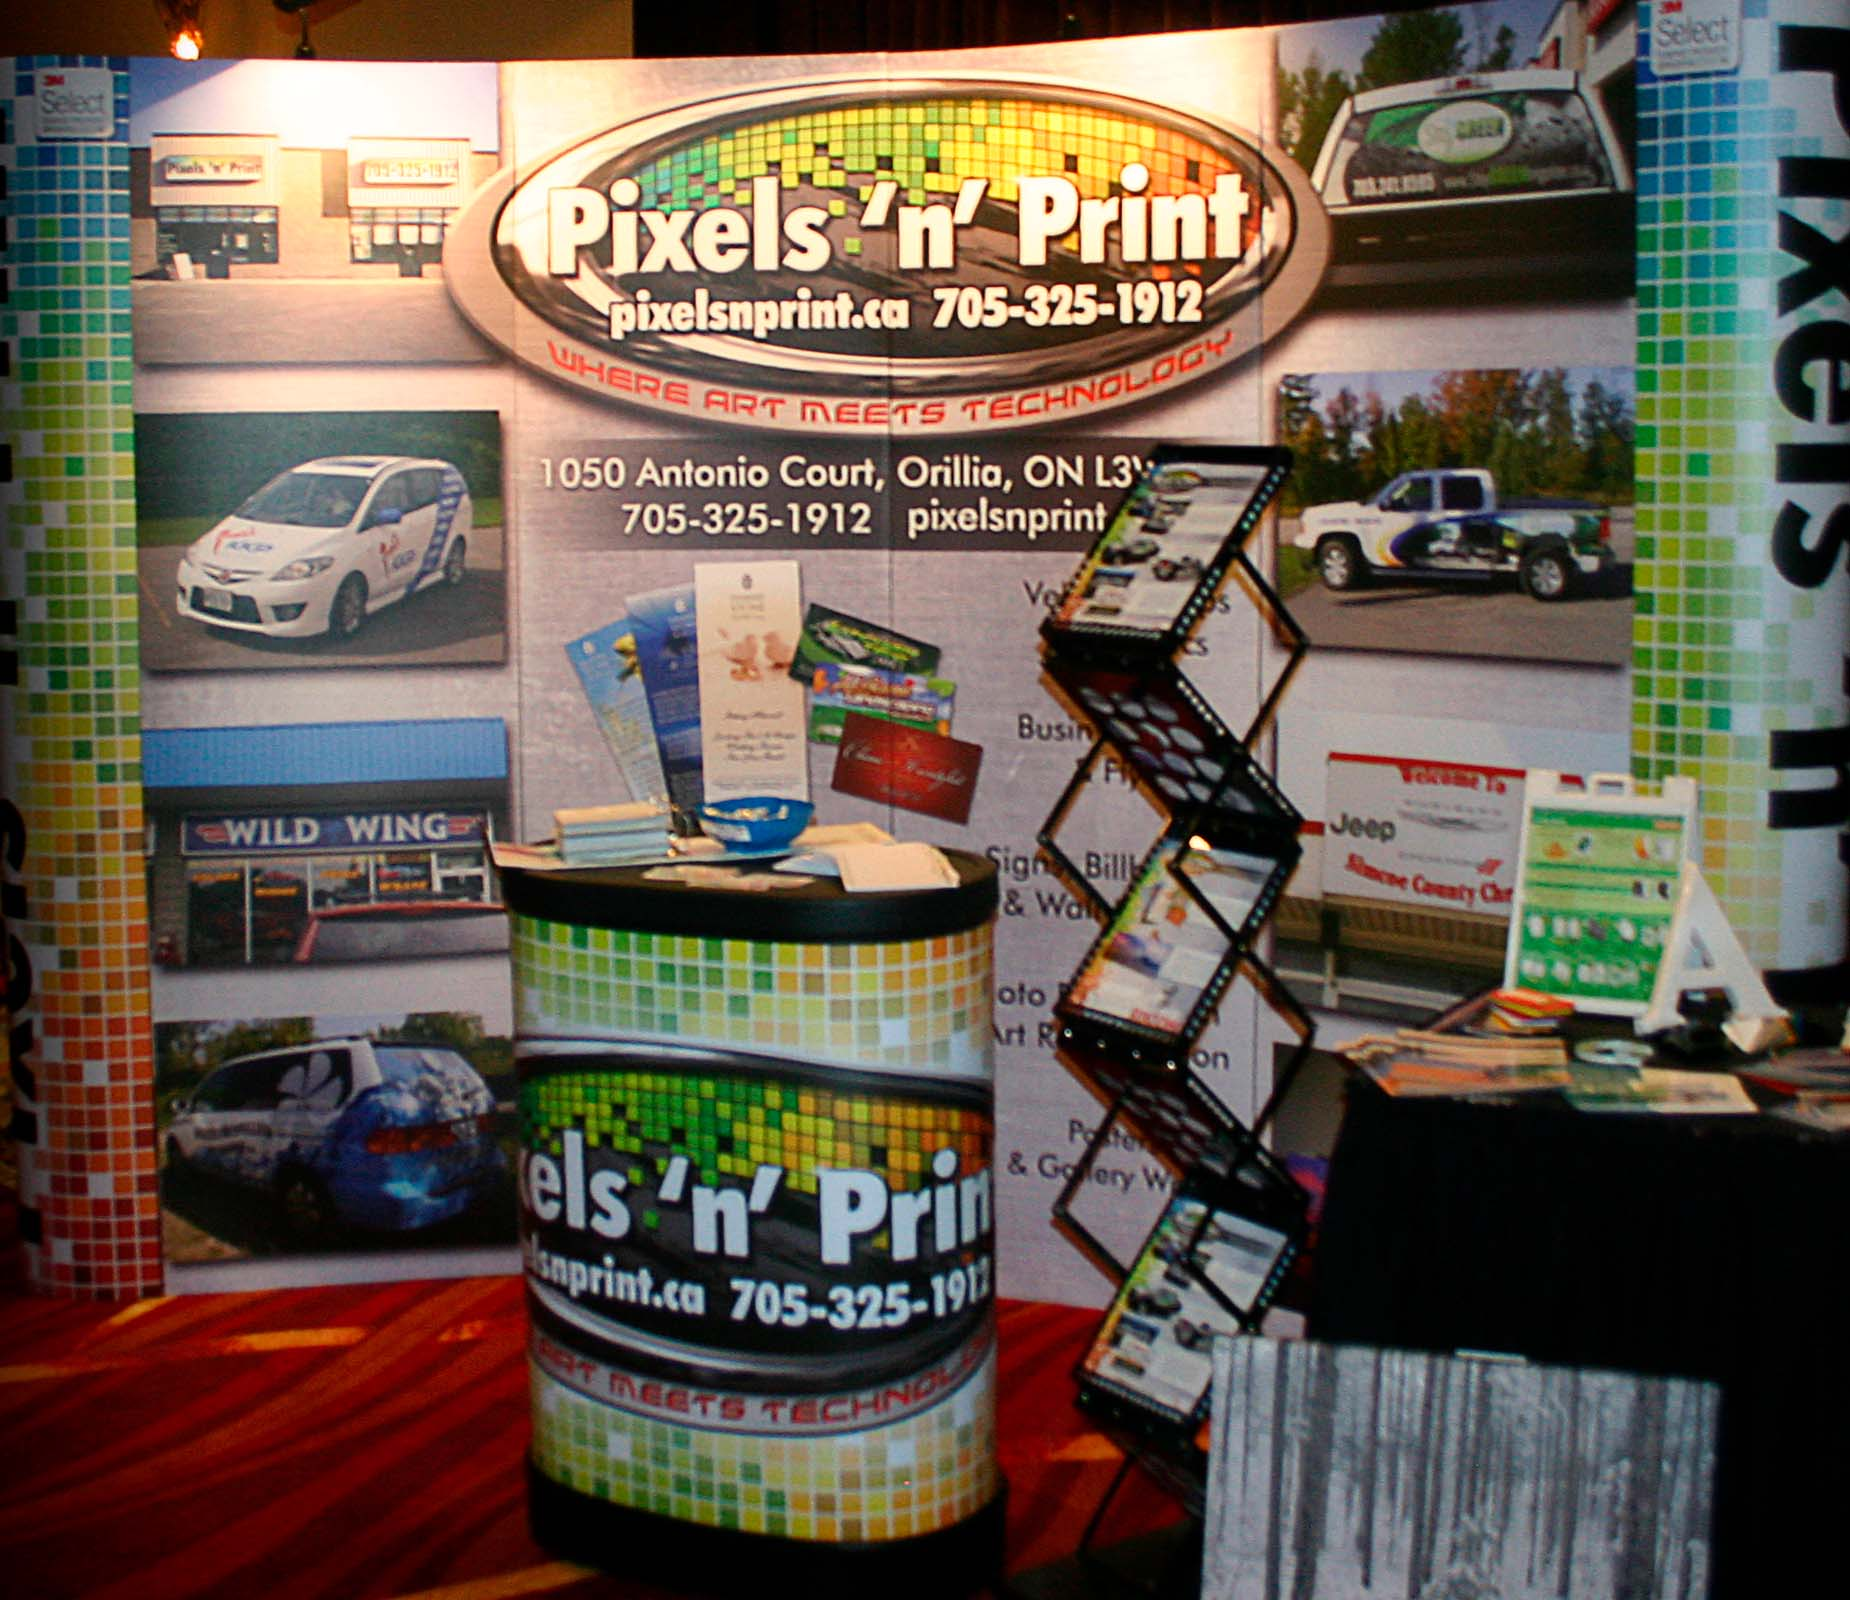 example of trade show signage